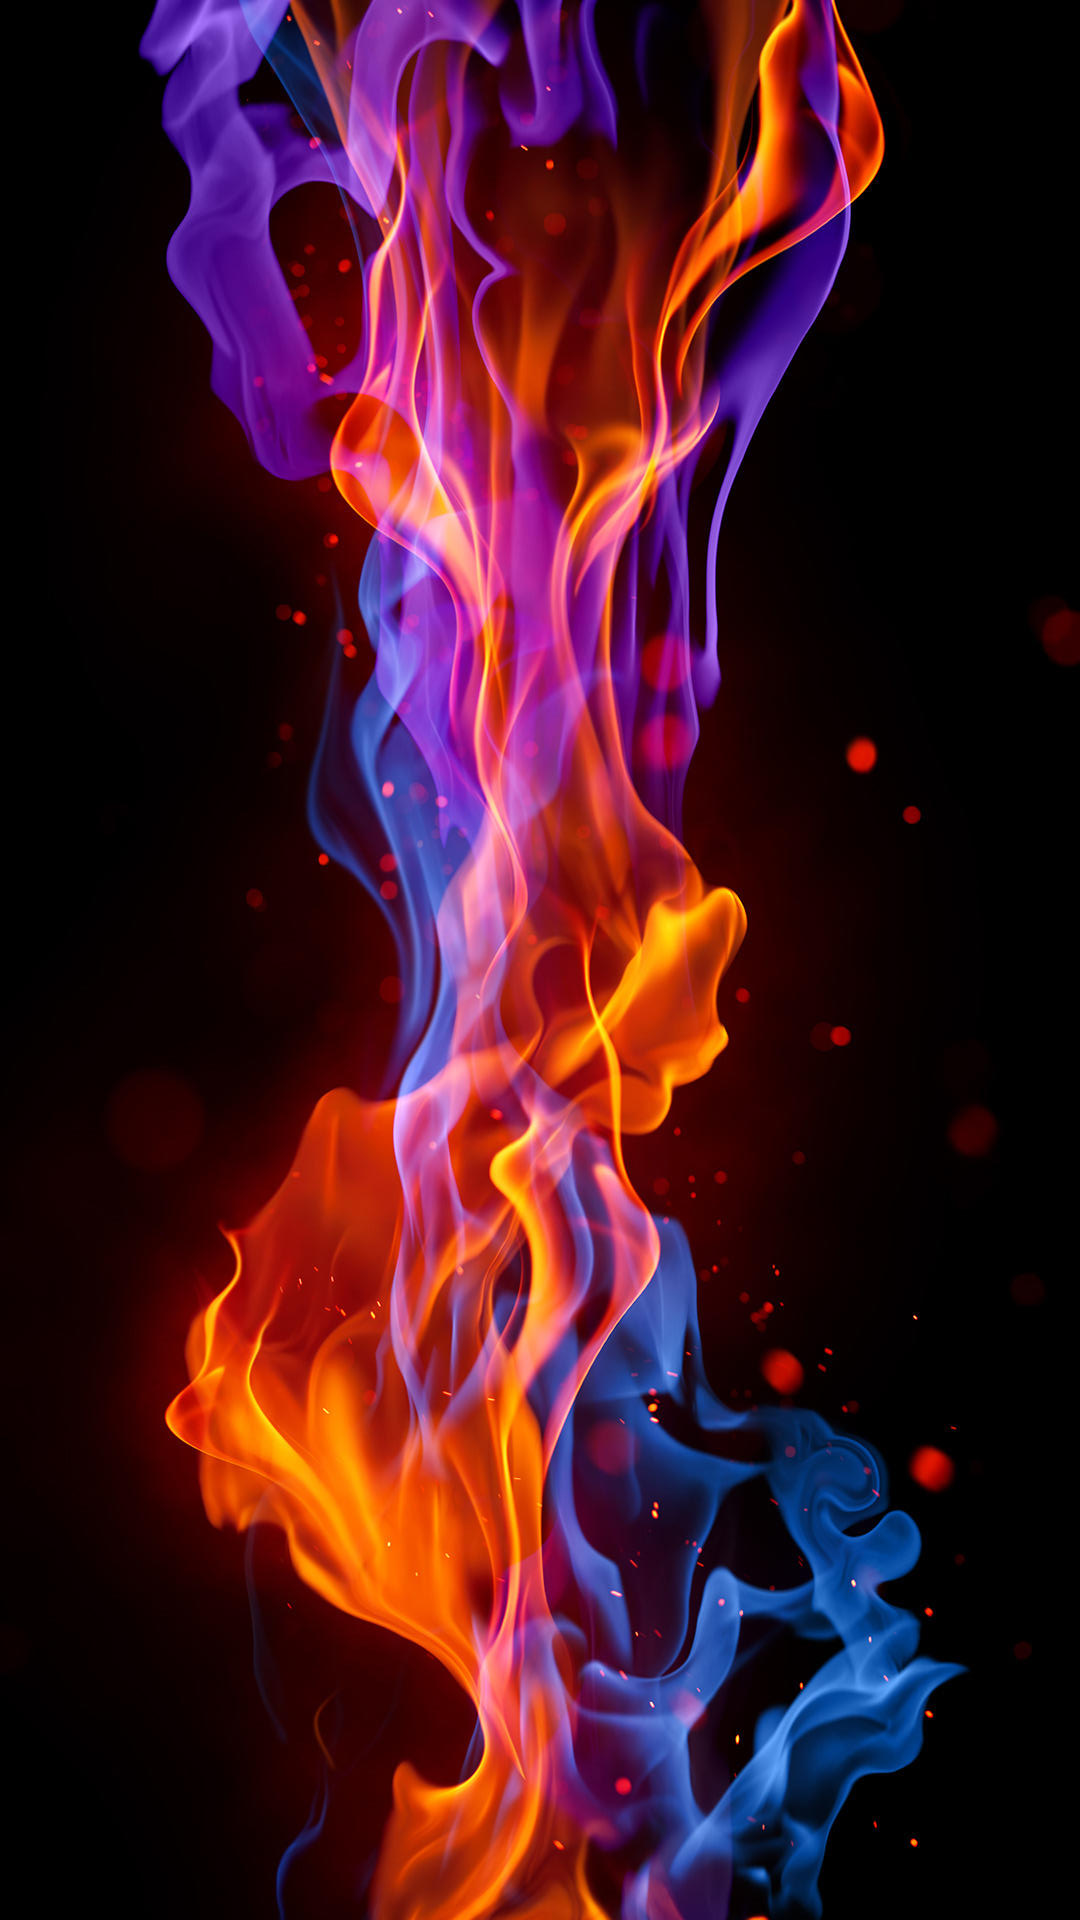 Brandweer Behang Fire Iphone Wallpaper Hd 3d Iphone Wallpaper